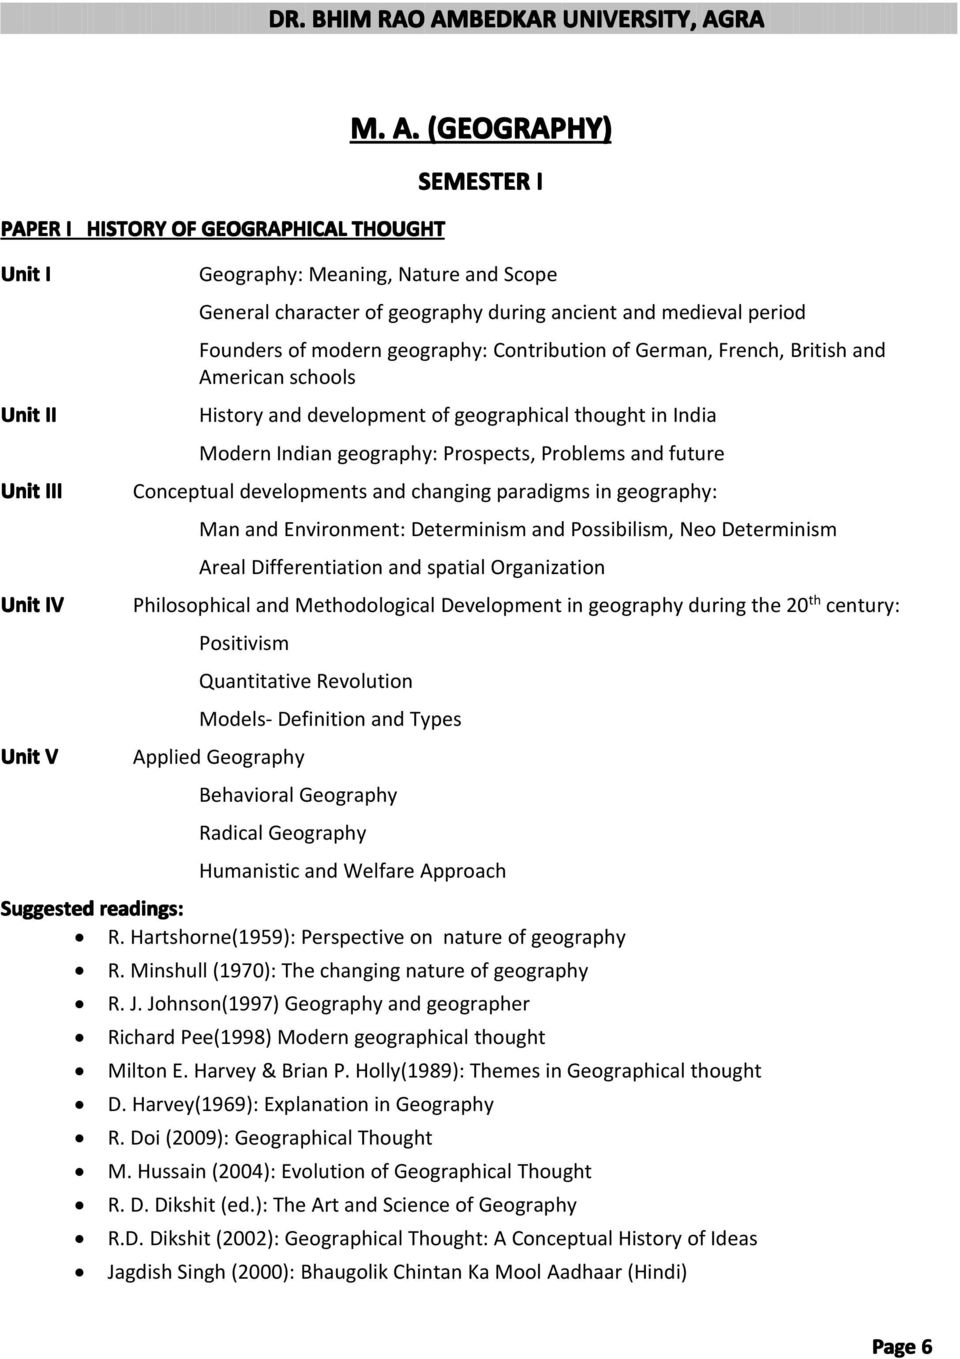 M A  GEOGRAPHY (SEMESTER-WISE) - PDF